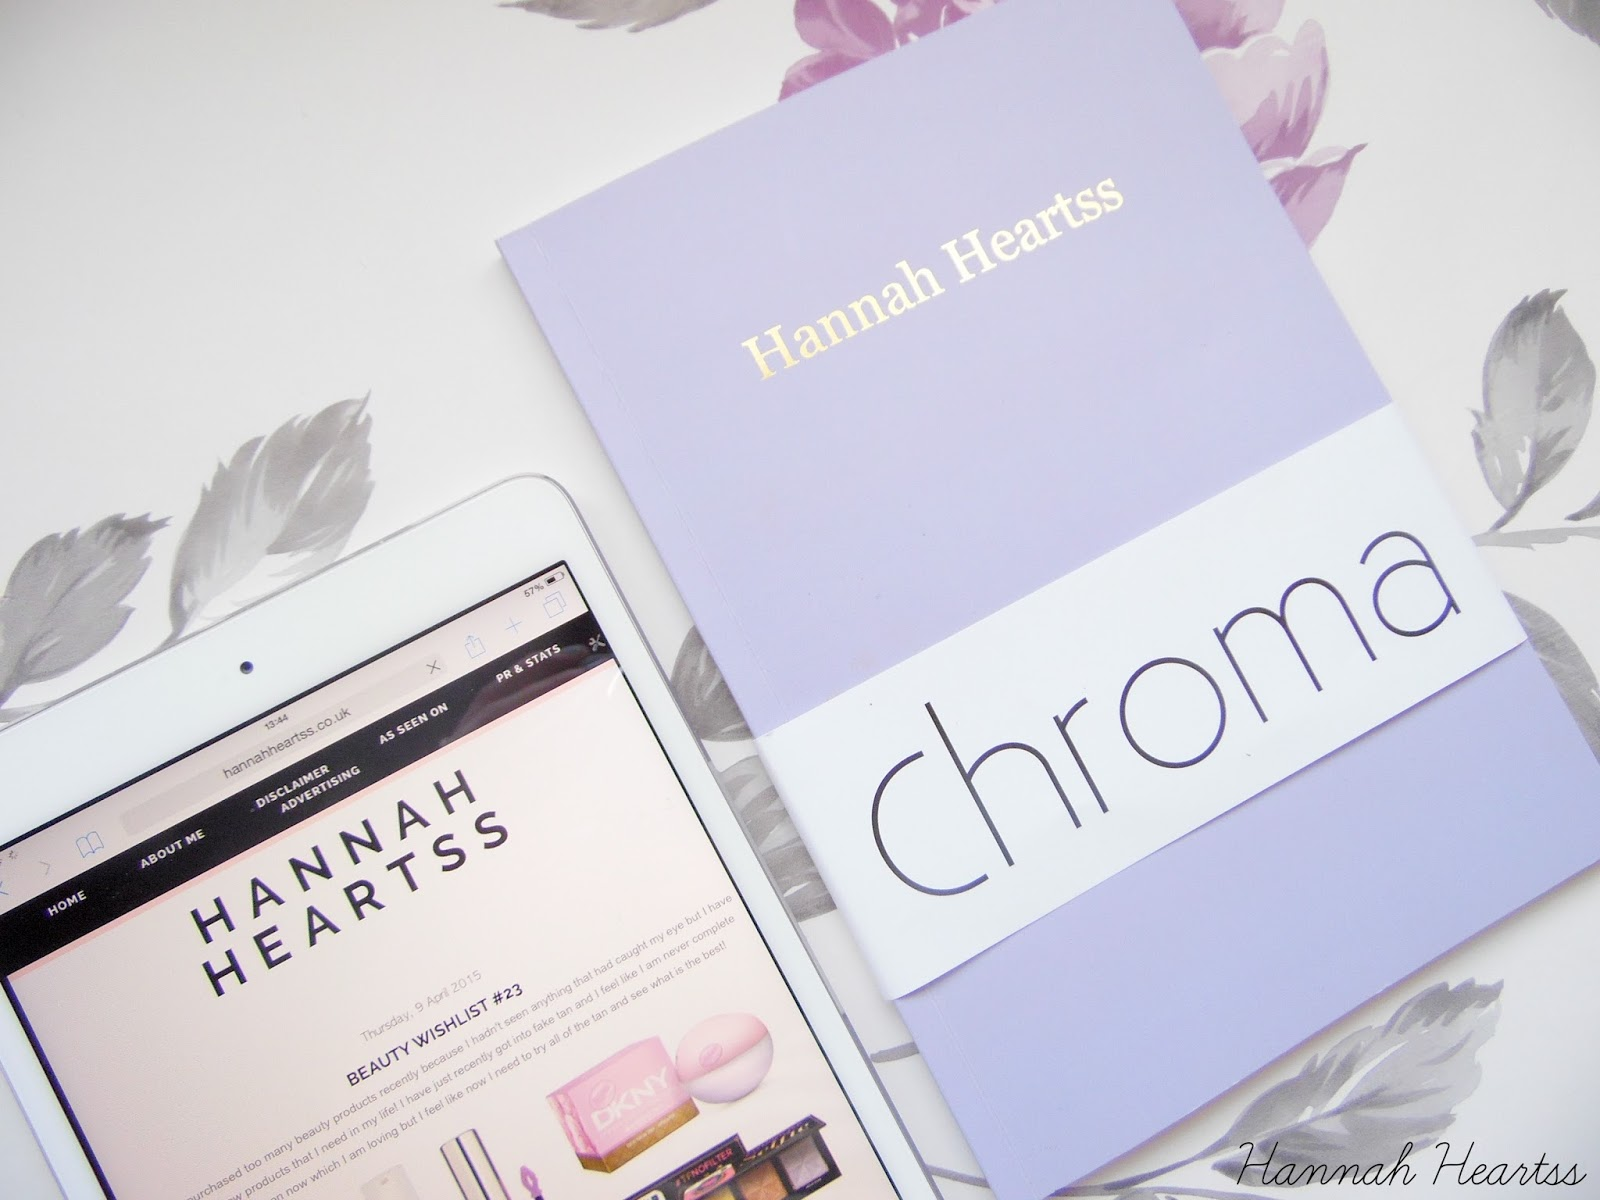 Chroma Stationary Review